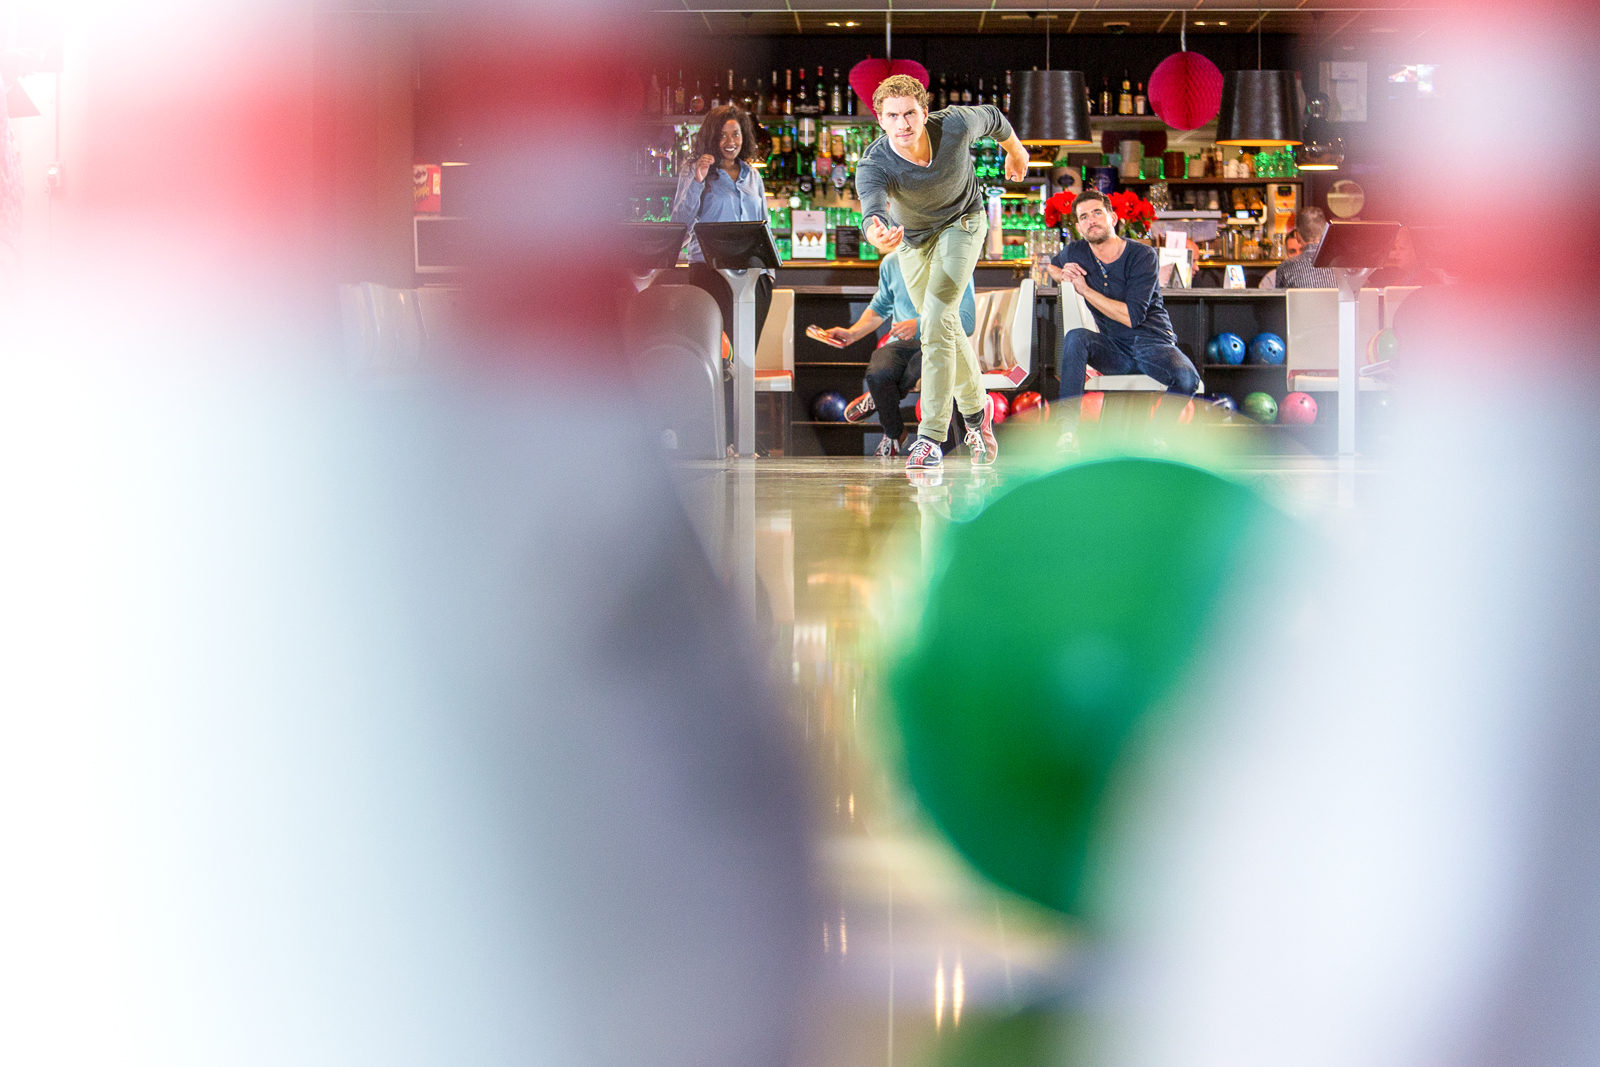 Group of friends on an active night out, bowling in a bowling alley, seen from the point of view of the pins